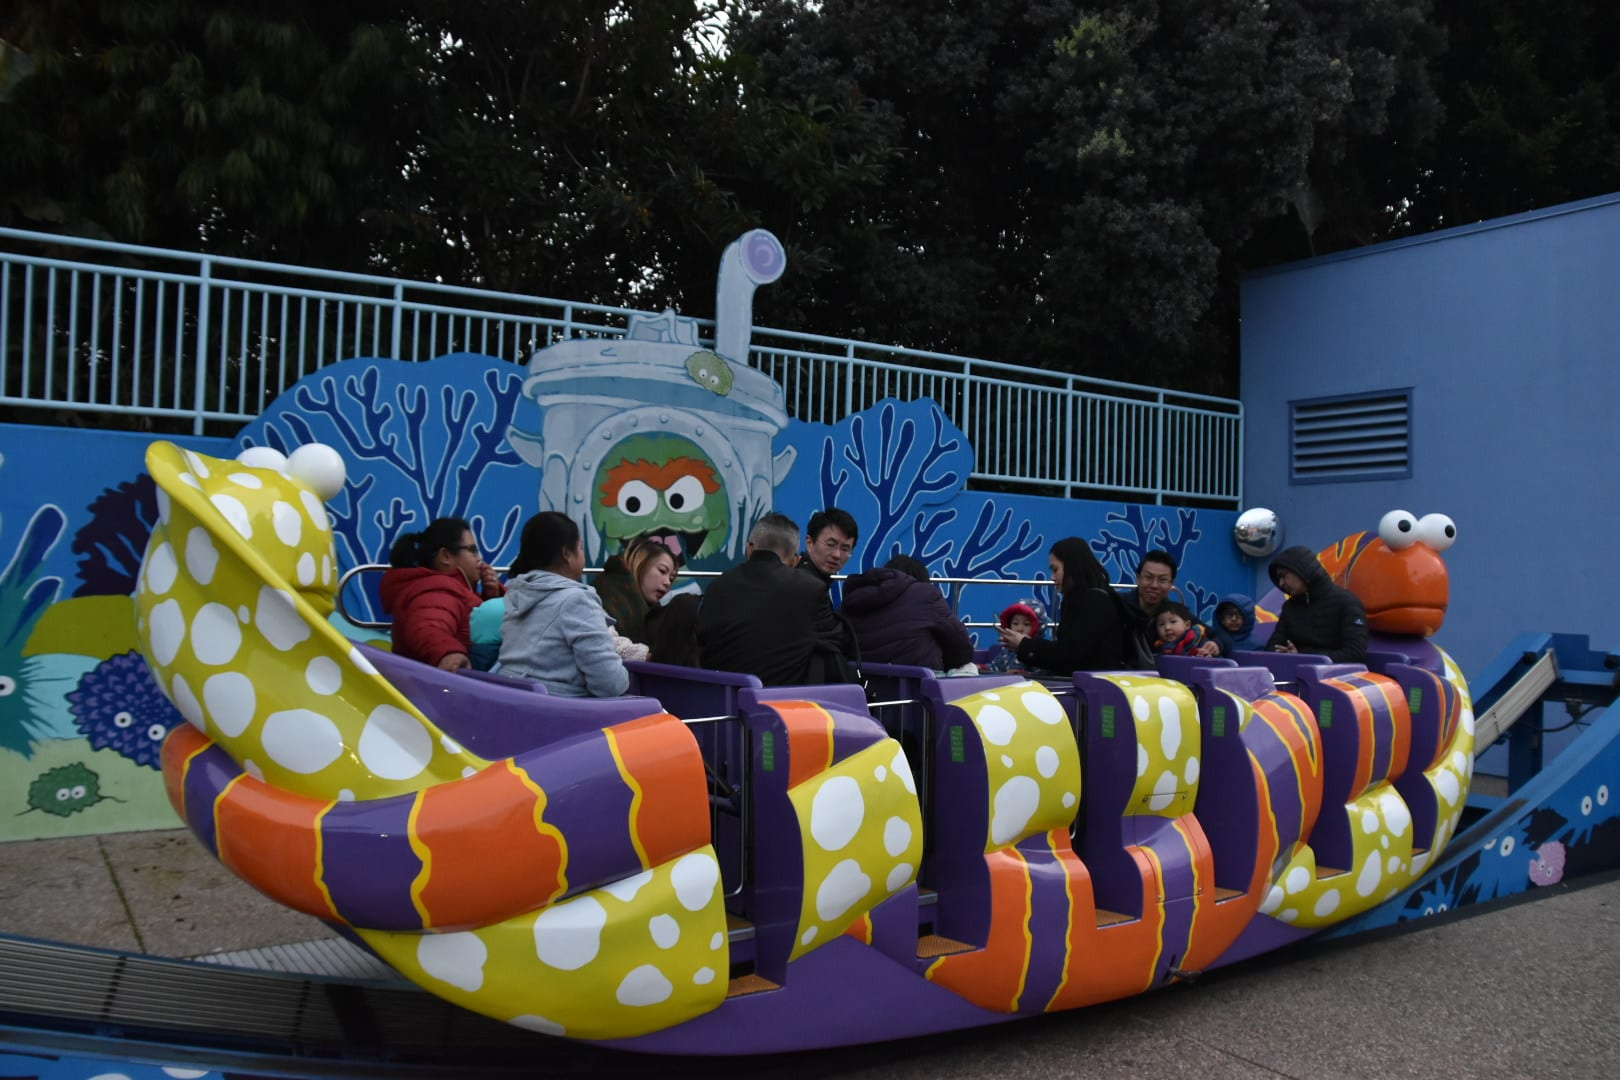 Oscar Eel ride at Sea World San Diego